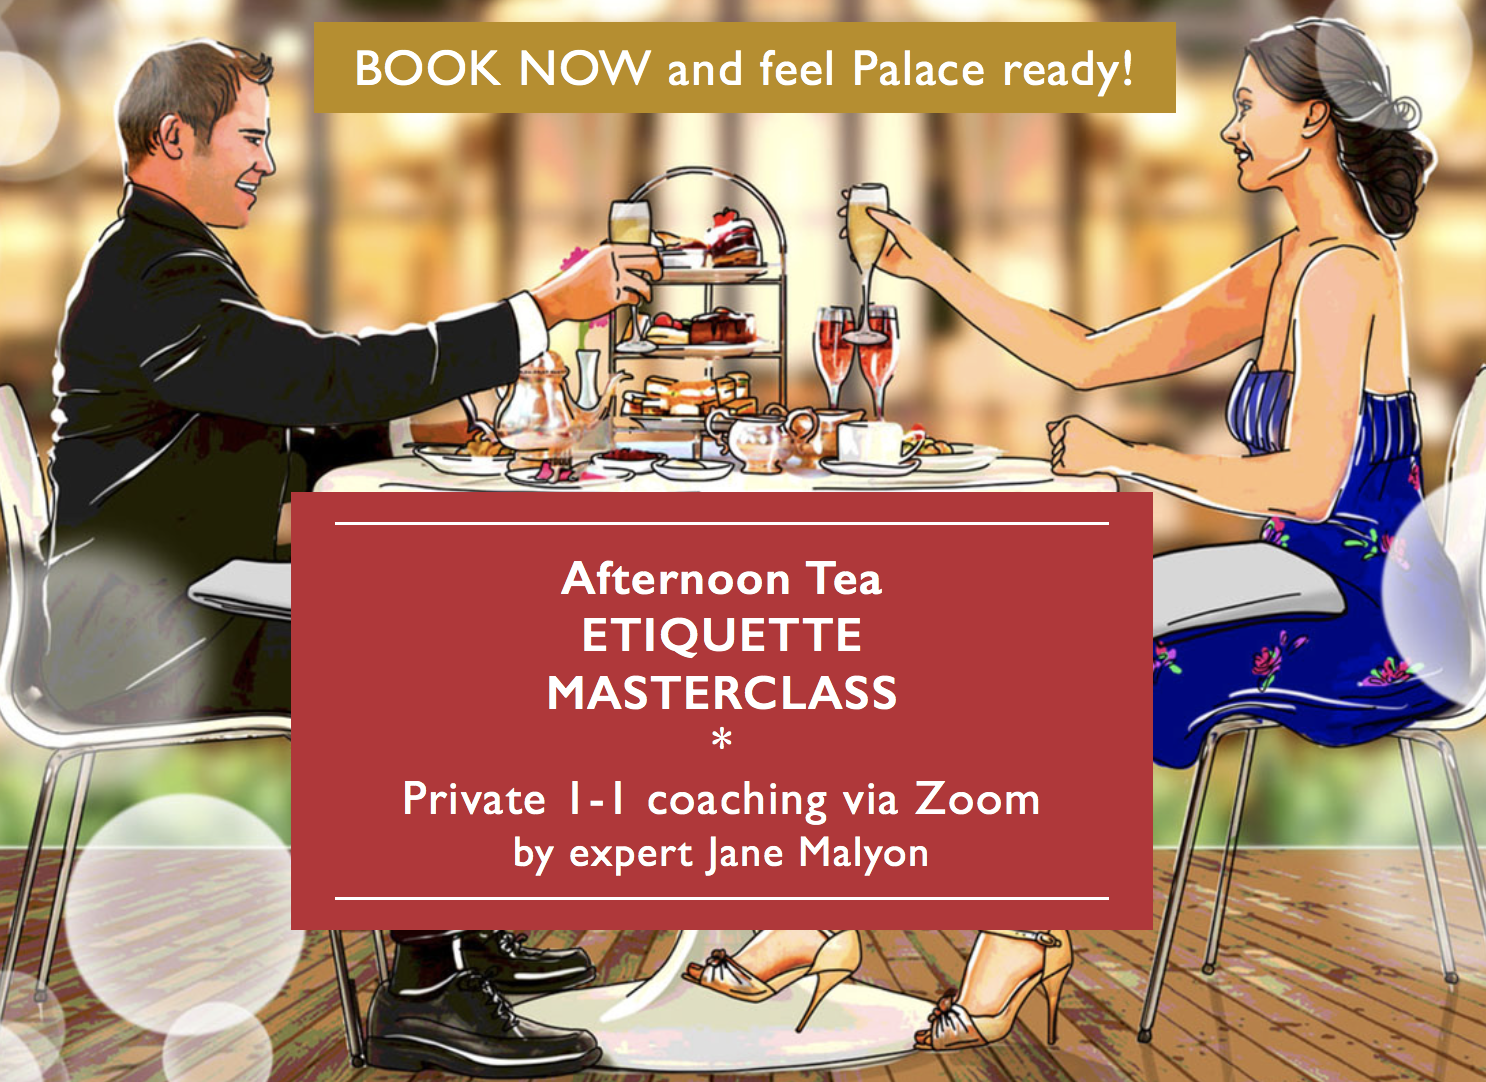 Afternoon Tea etiquette masterclass via Zoom by Jane Malyon - book now